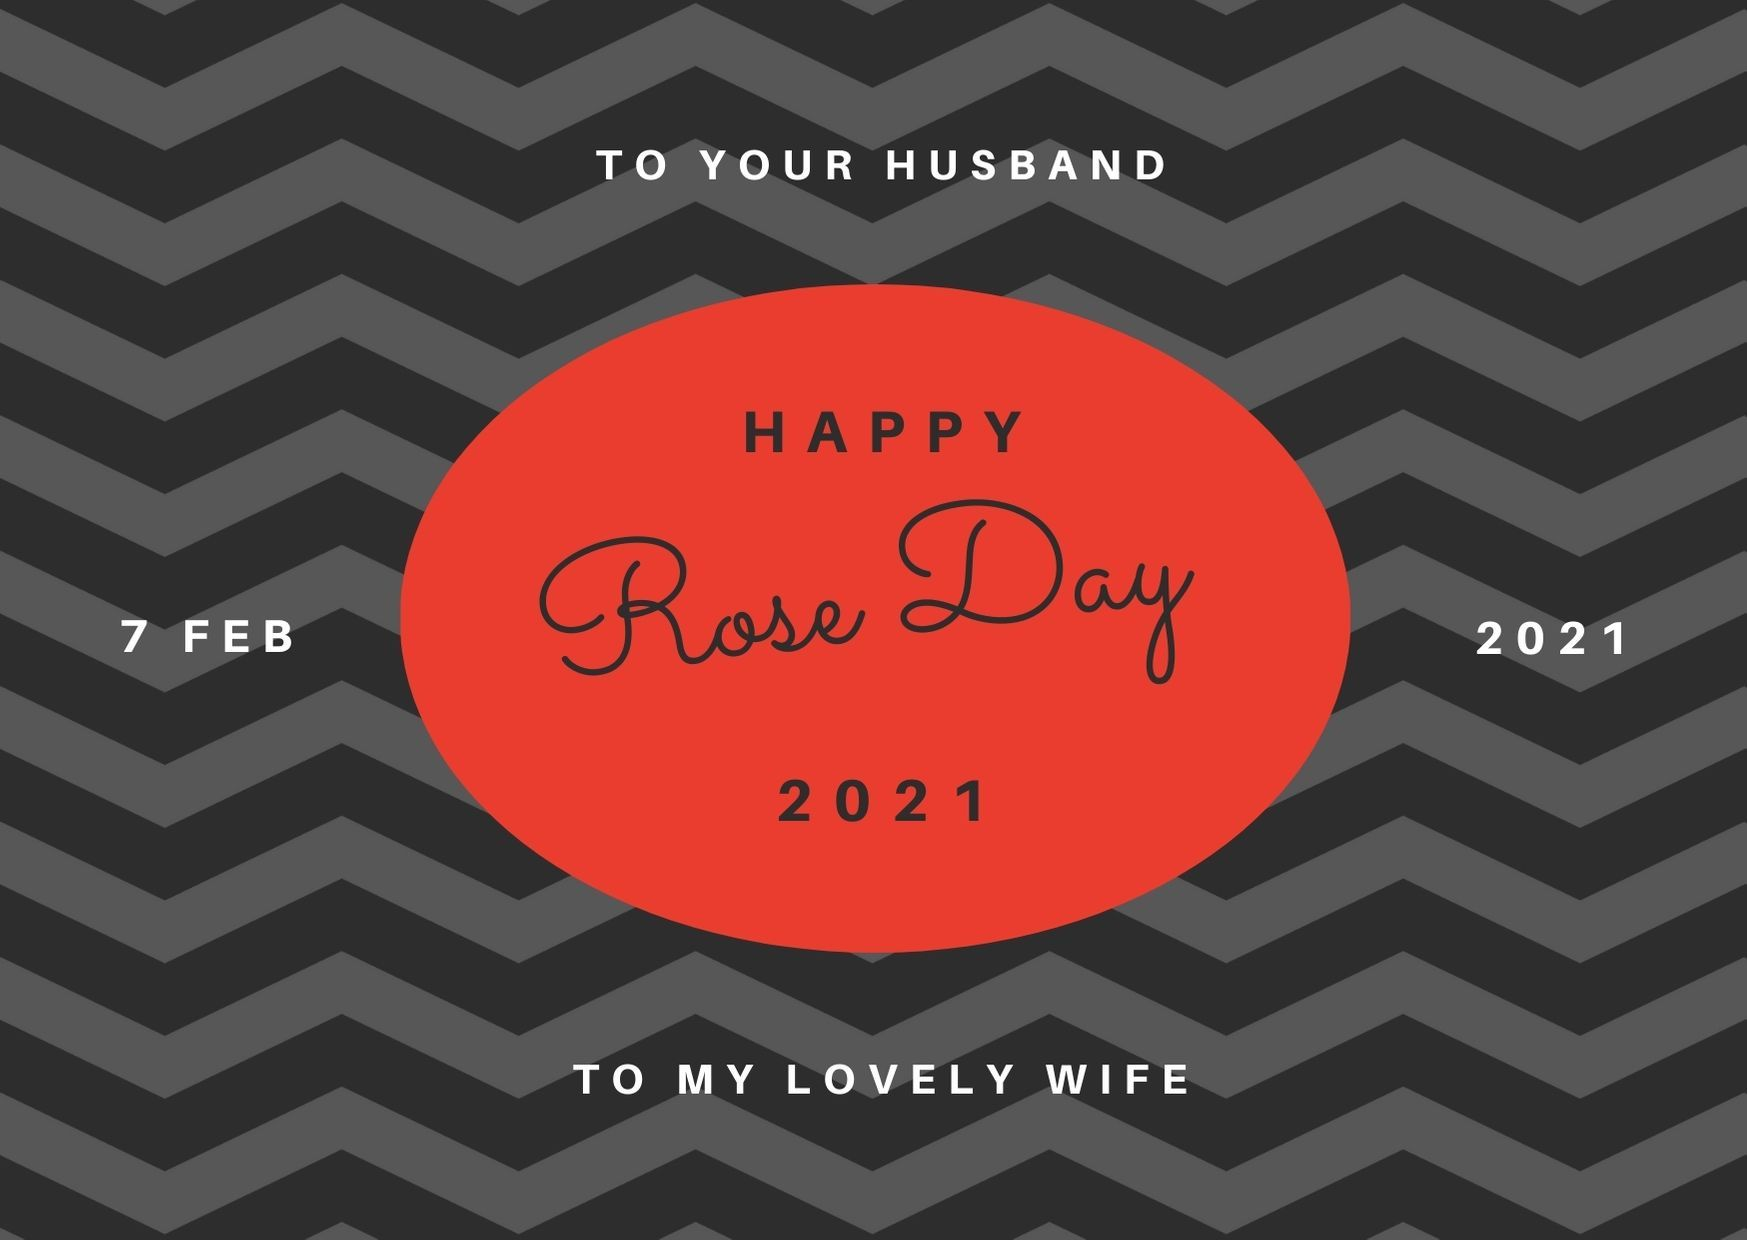 Happy Rose Day 2021 Messages For Wife Happy Happy Valentines Day Messages Images photos love rose day 2021